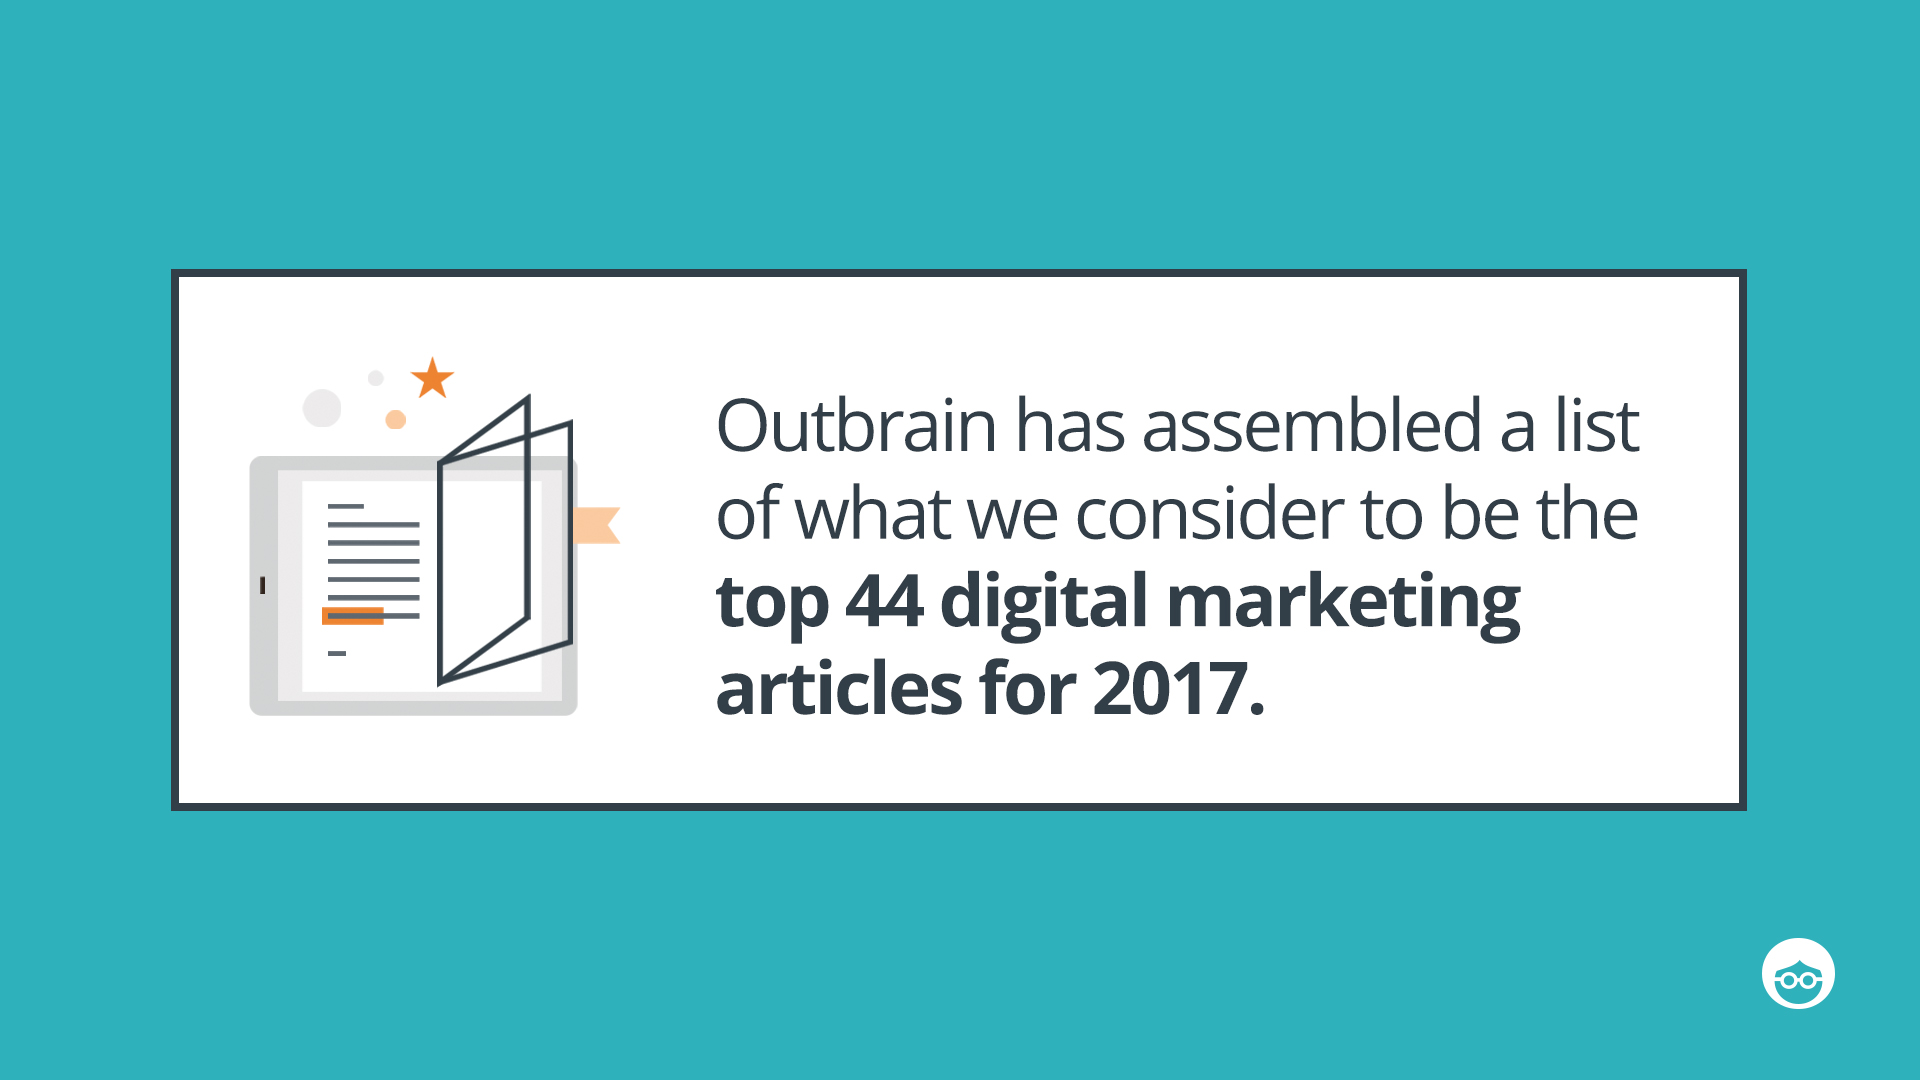 44 Top Digital Marketing Articles for 2017